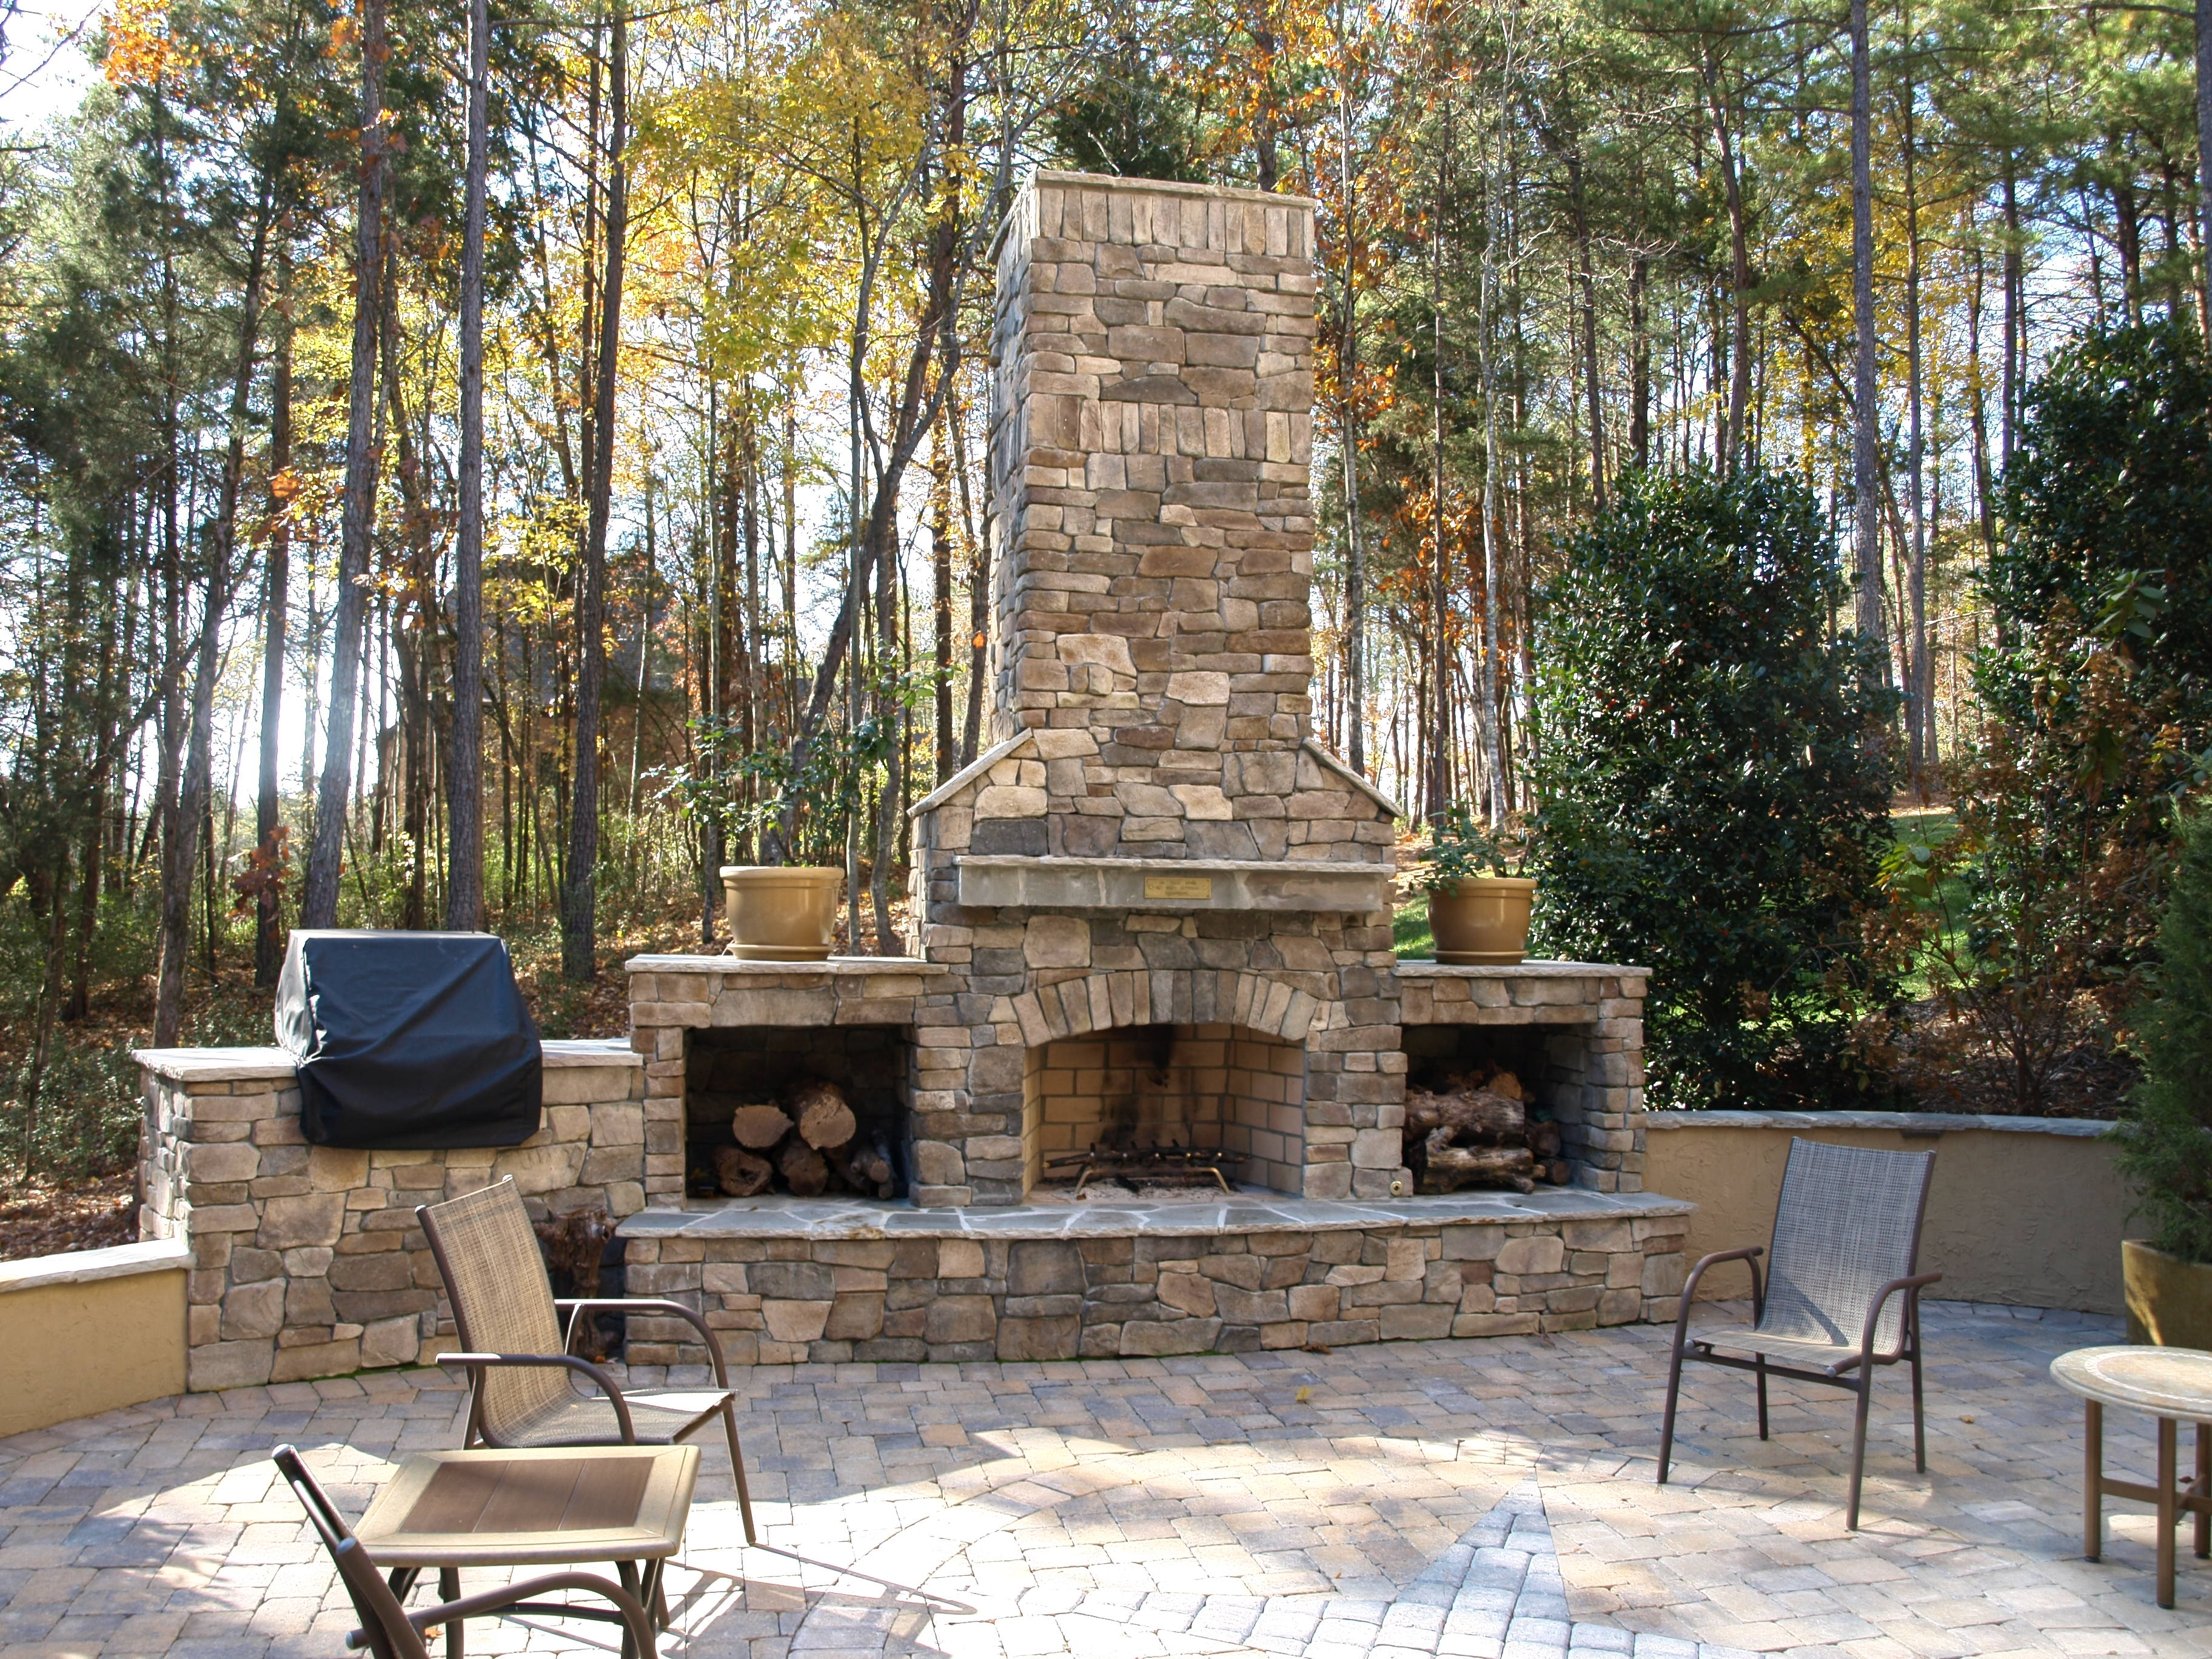 Outdoor Fireplace Kits Gallery Home Fixtures Decoration Ideas Throughout Masonry Outdoor Fireplace The Right Options For Masonry Outdoor Fireplace